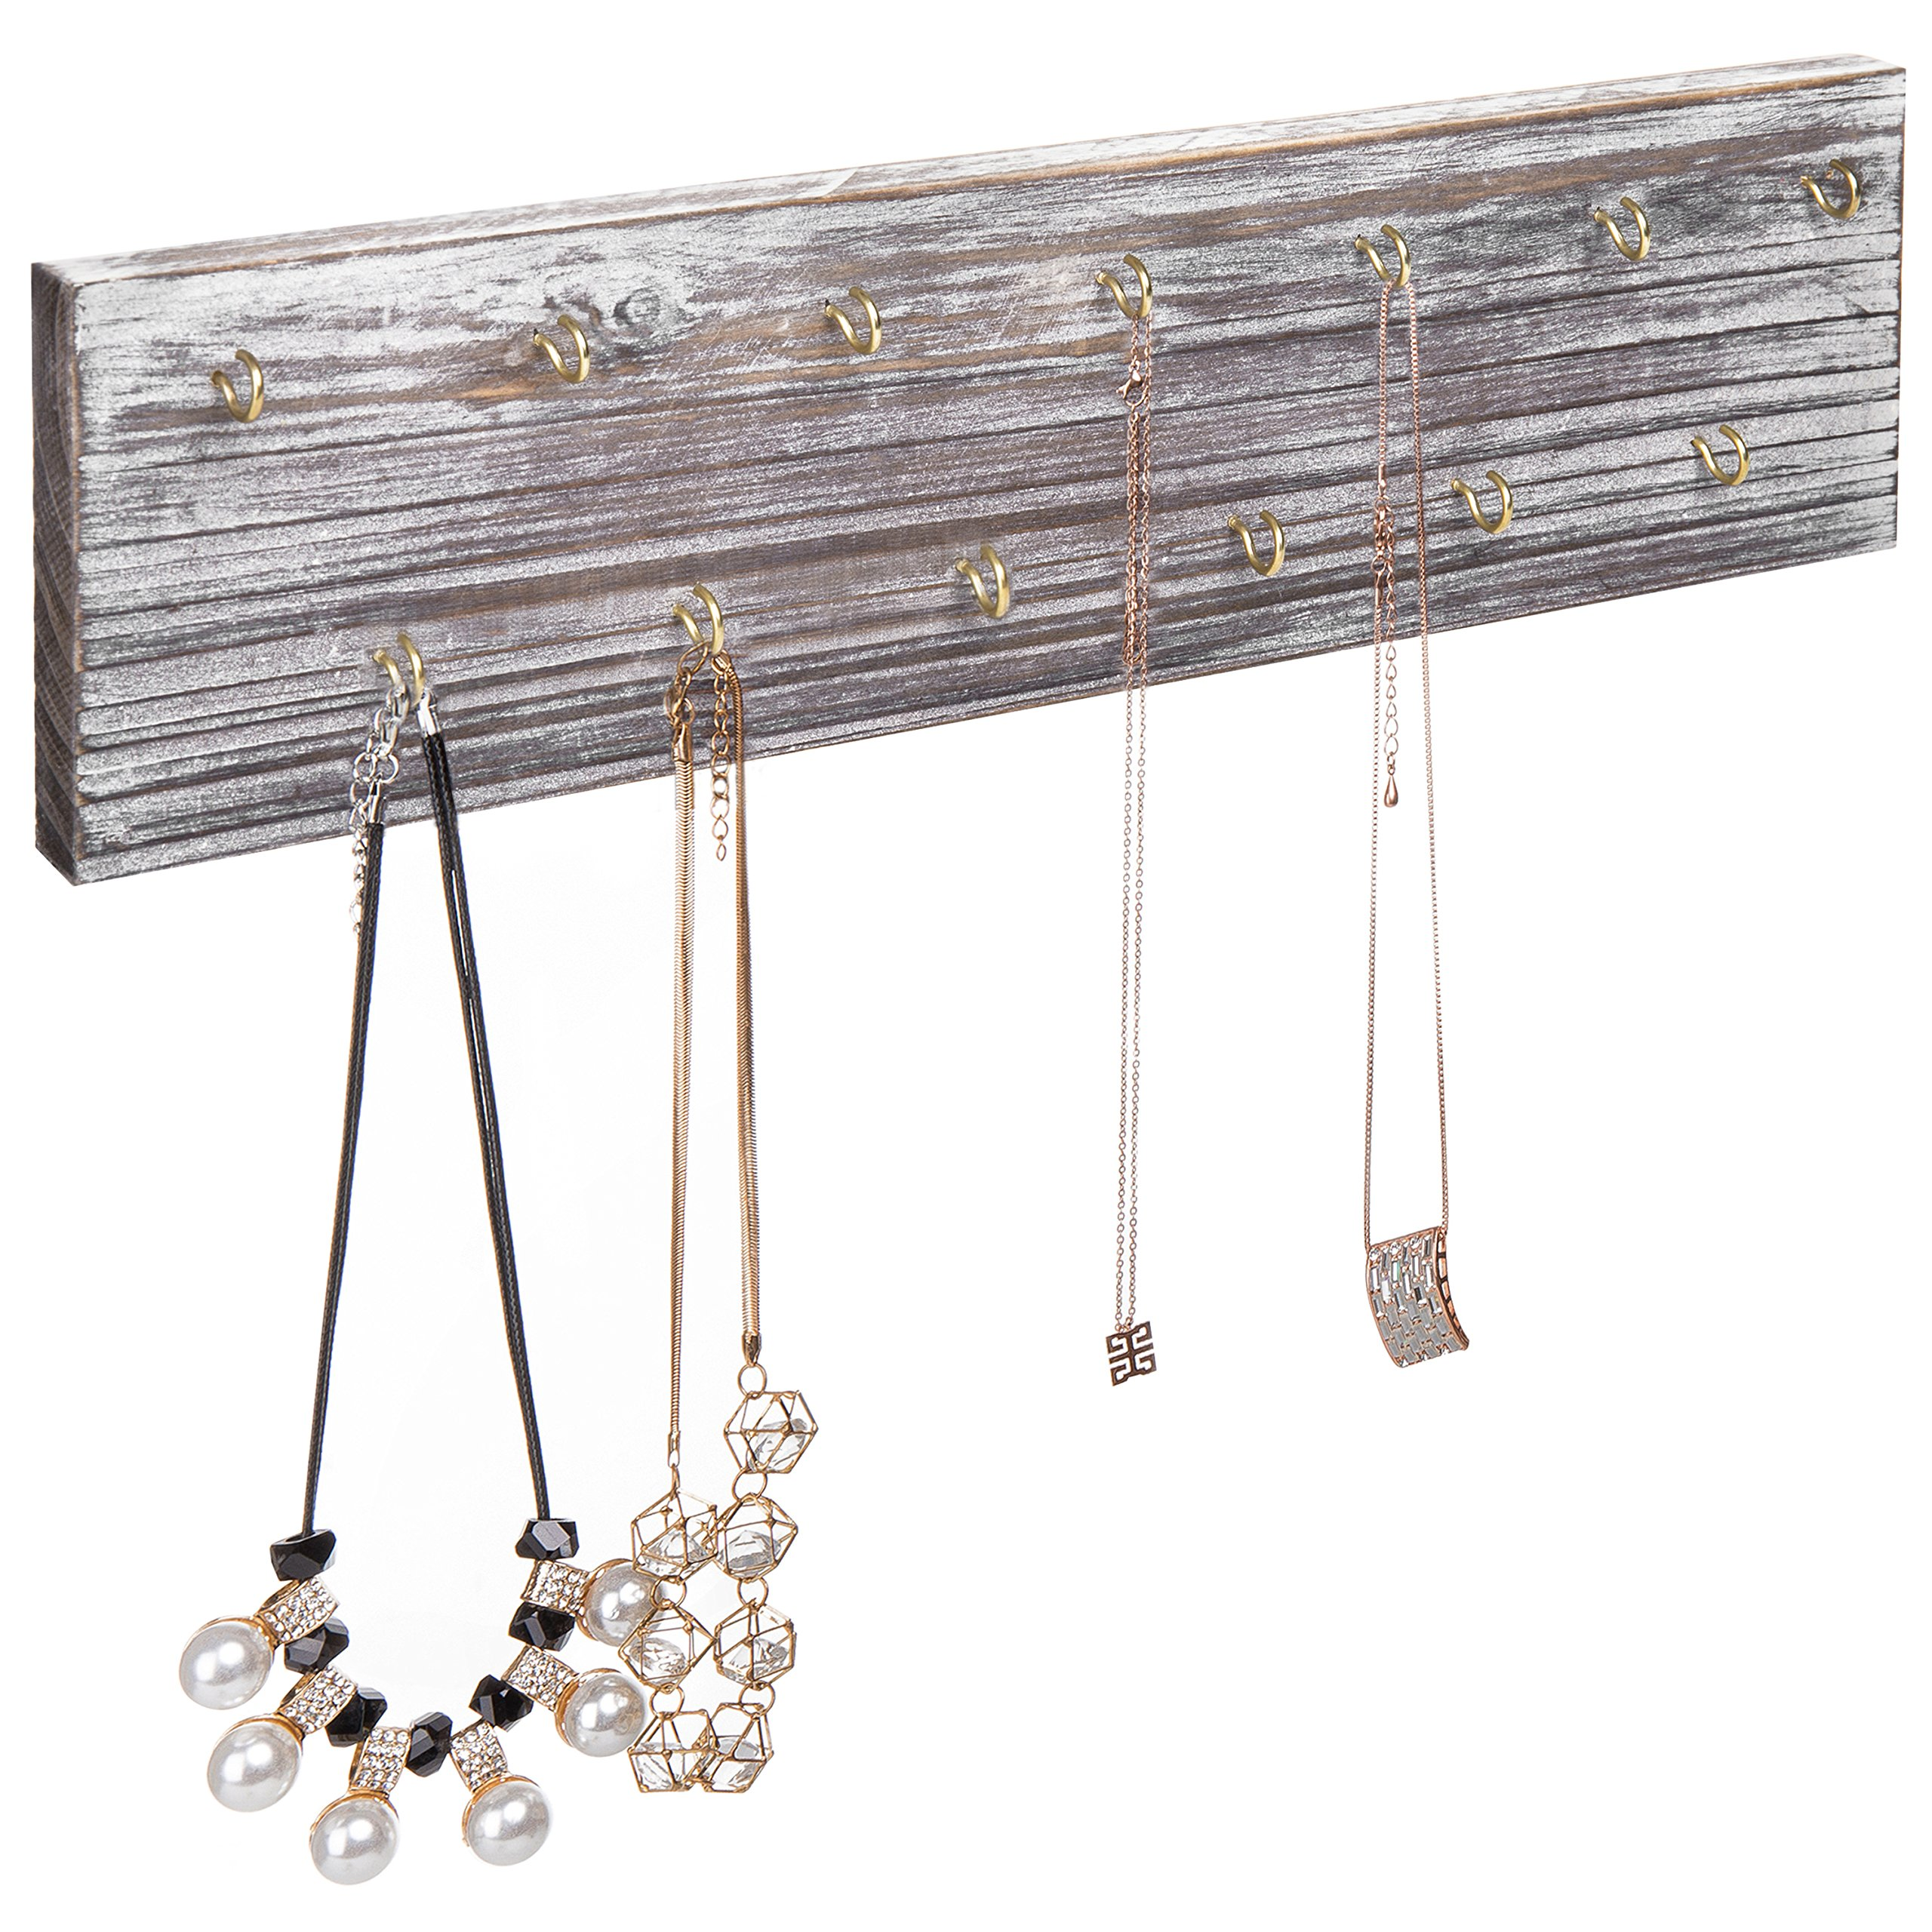 MyGift Rustic Wood Wall-Mounted 13-Hook Necklace Organizer